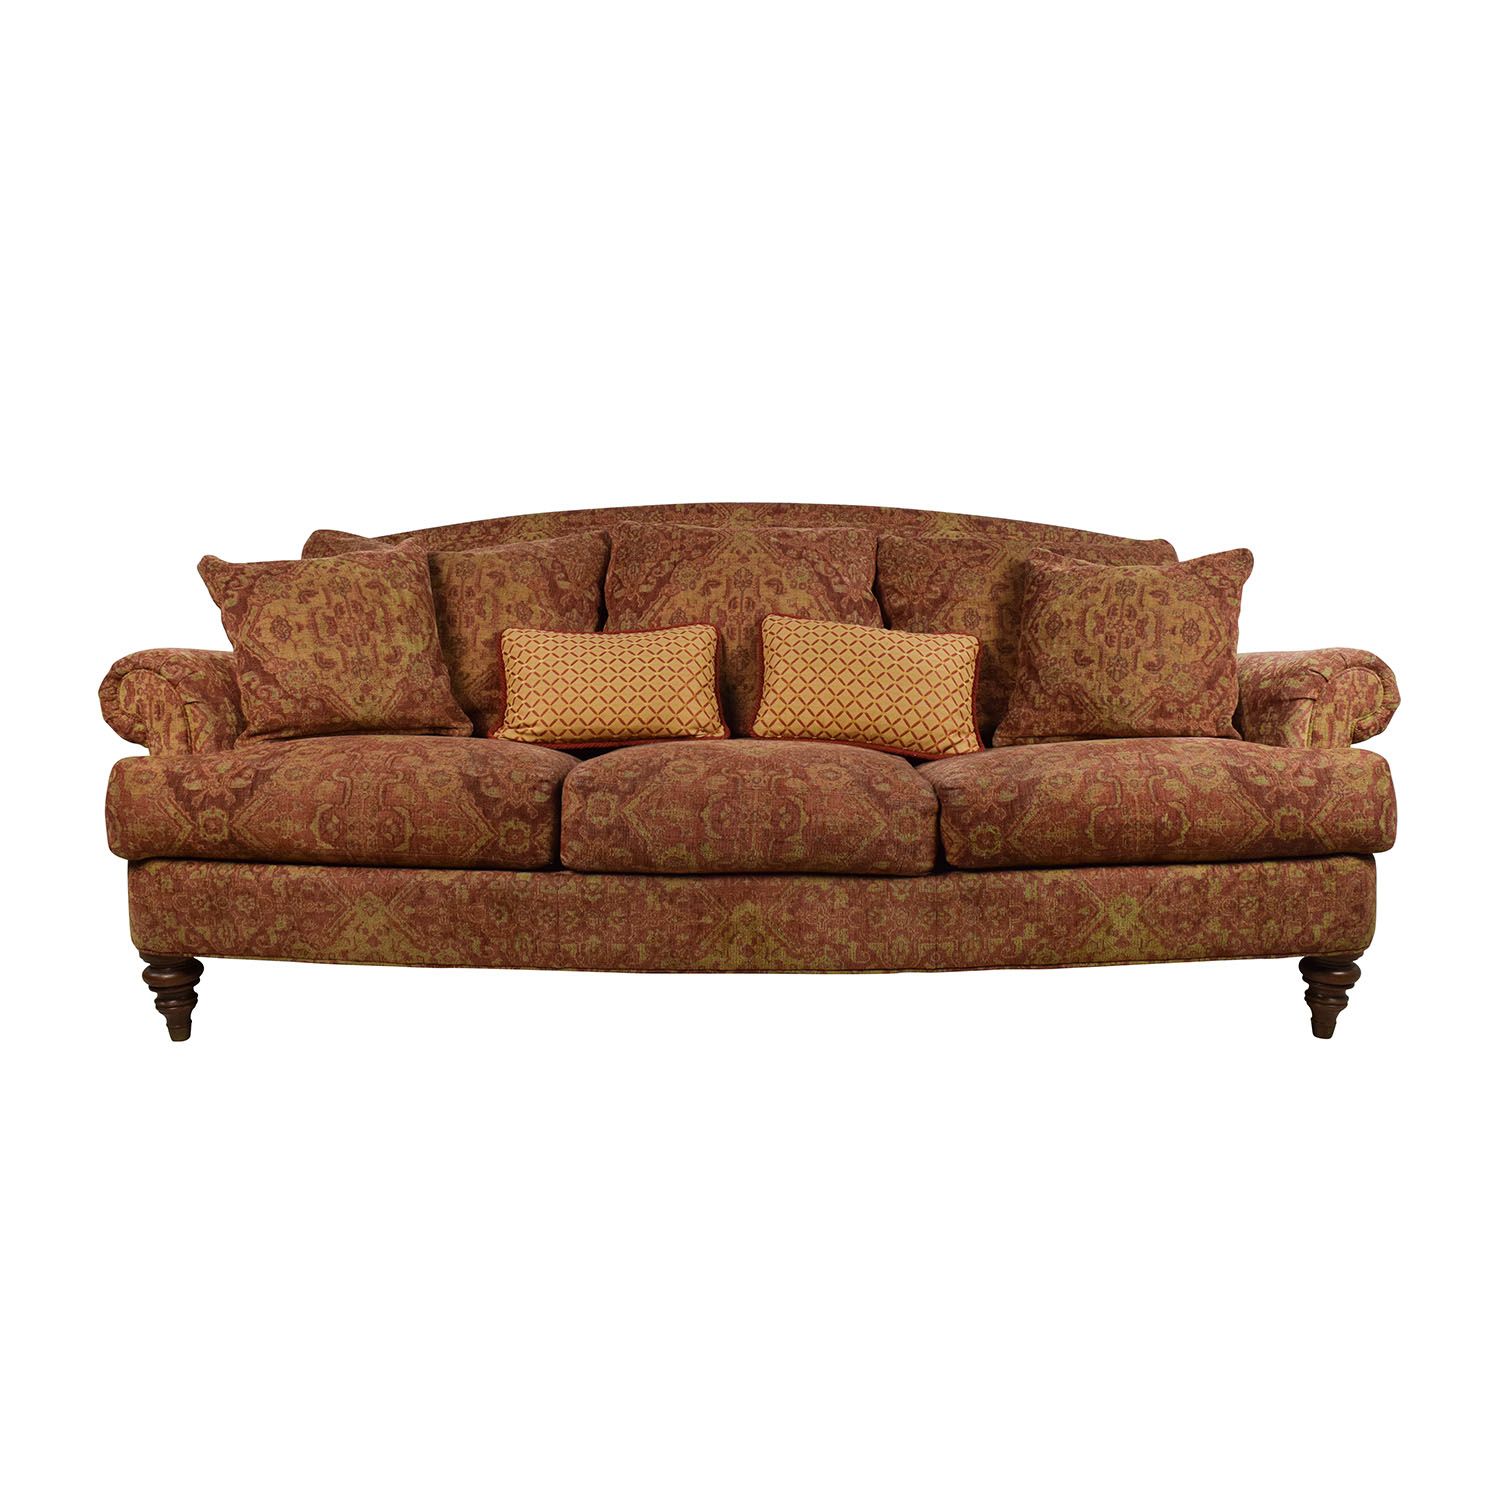 Dimensions Of A Couch Loveseat Thousands Pictures Of Home Furnishing Design And Decor